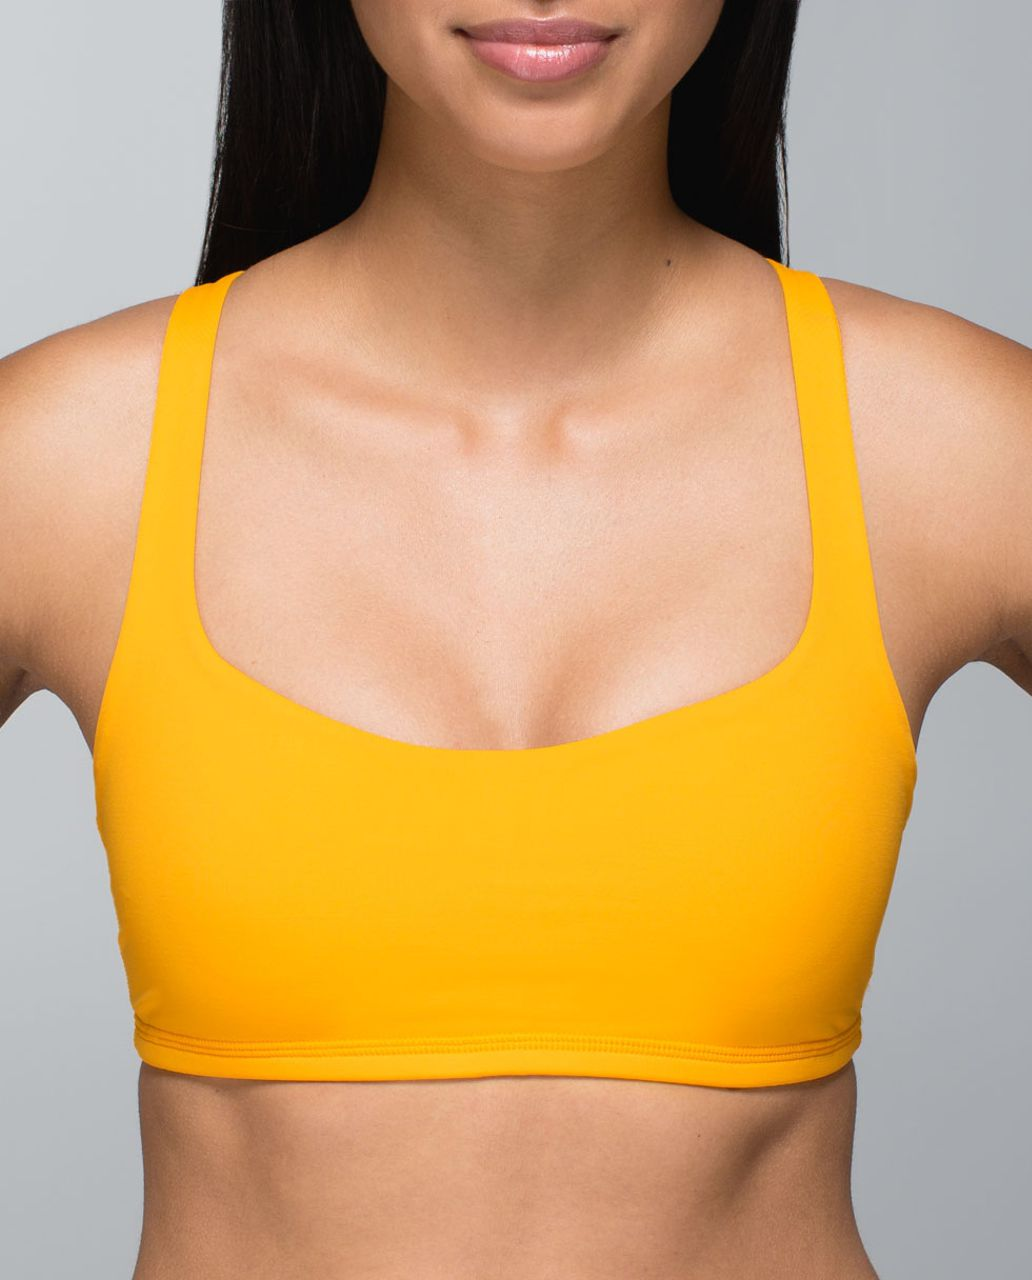 Lululemon Free To Be Bra - Bananarama